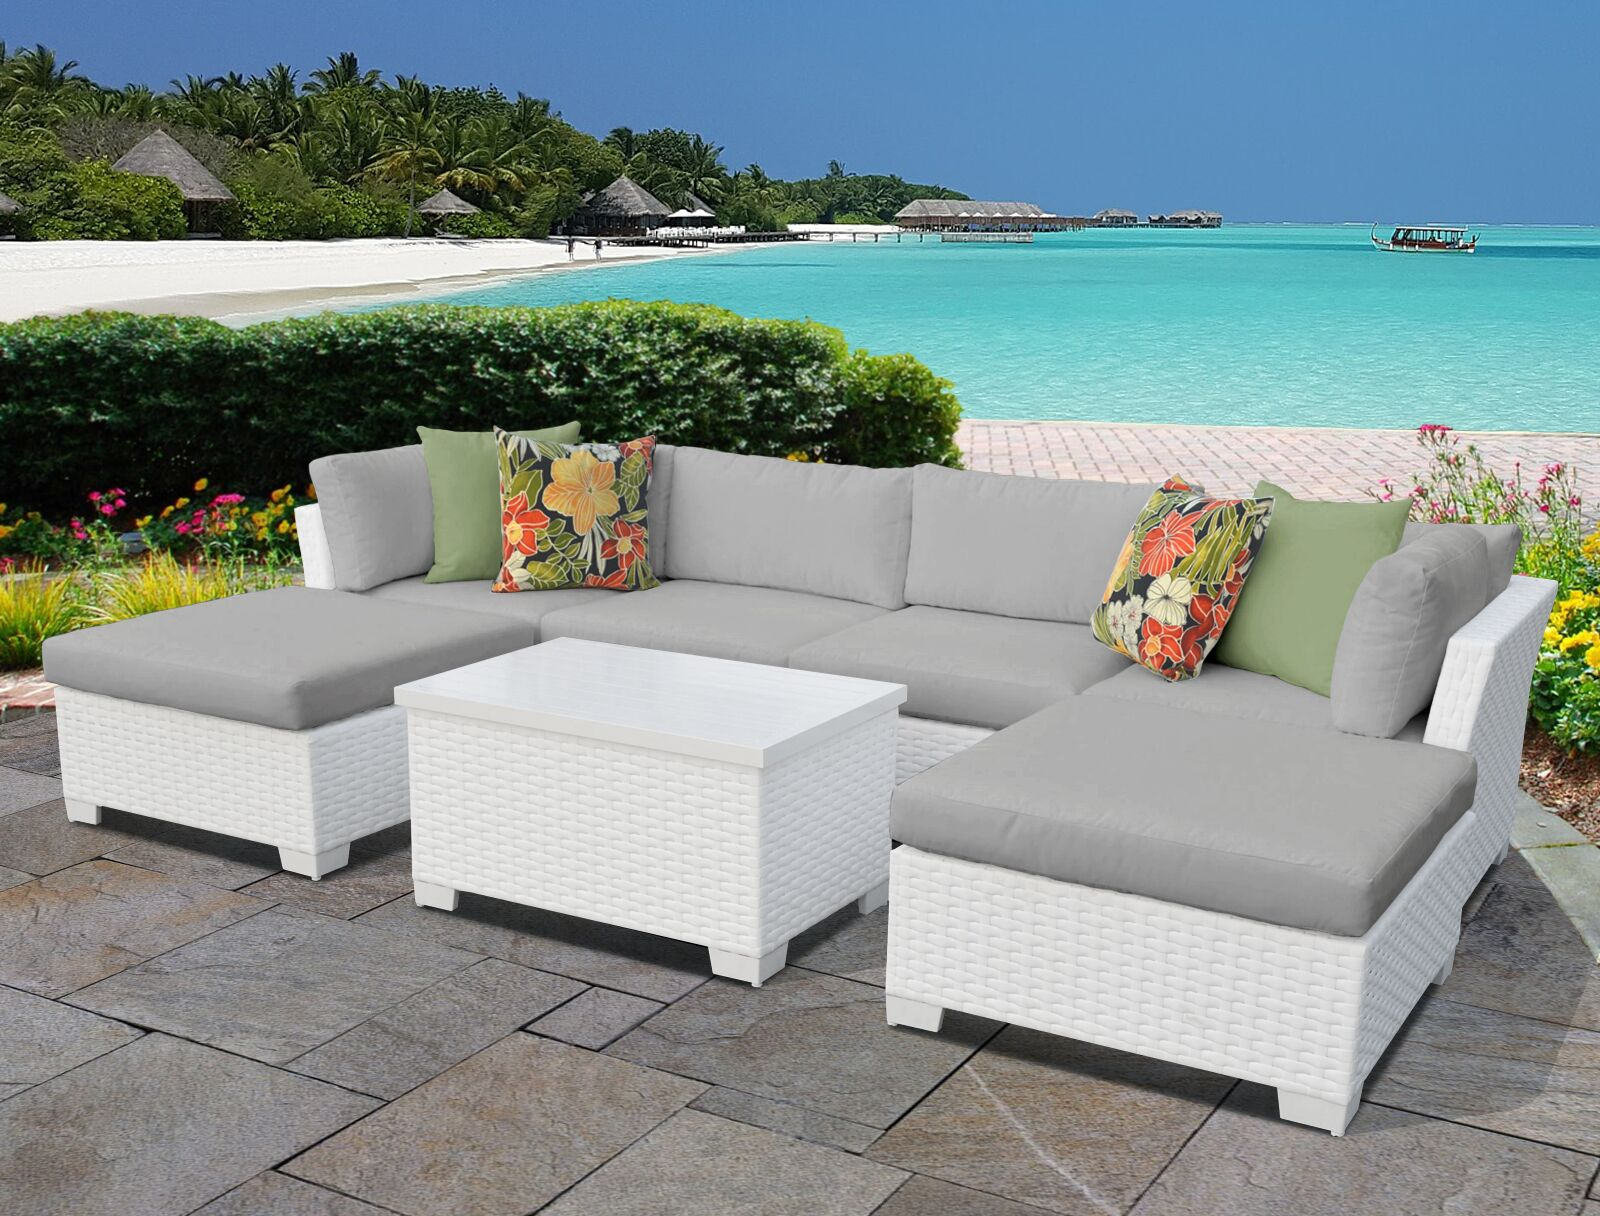 Monaco 7 Piece Sectional Set with Cushions Cushion Color (Fabric): Gray